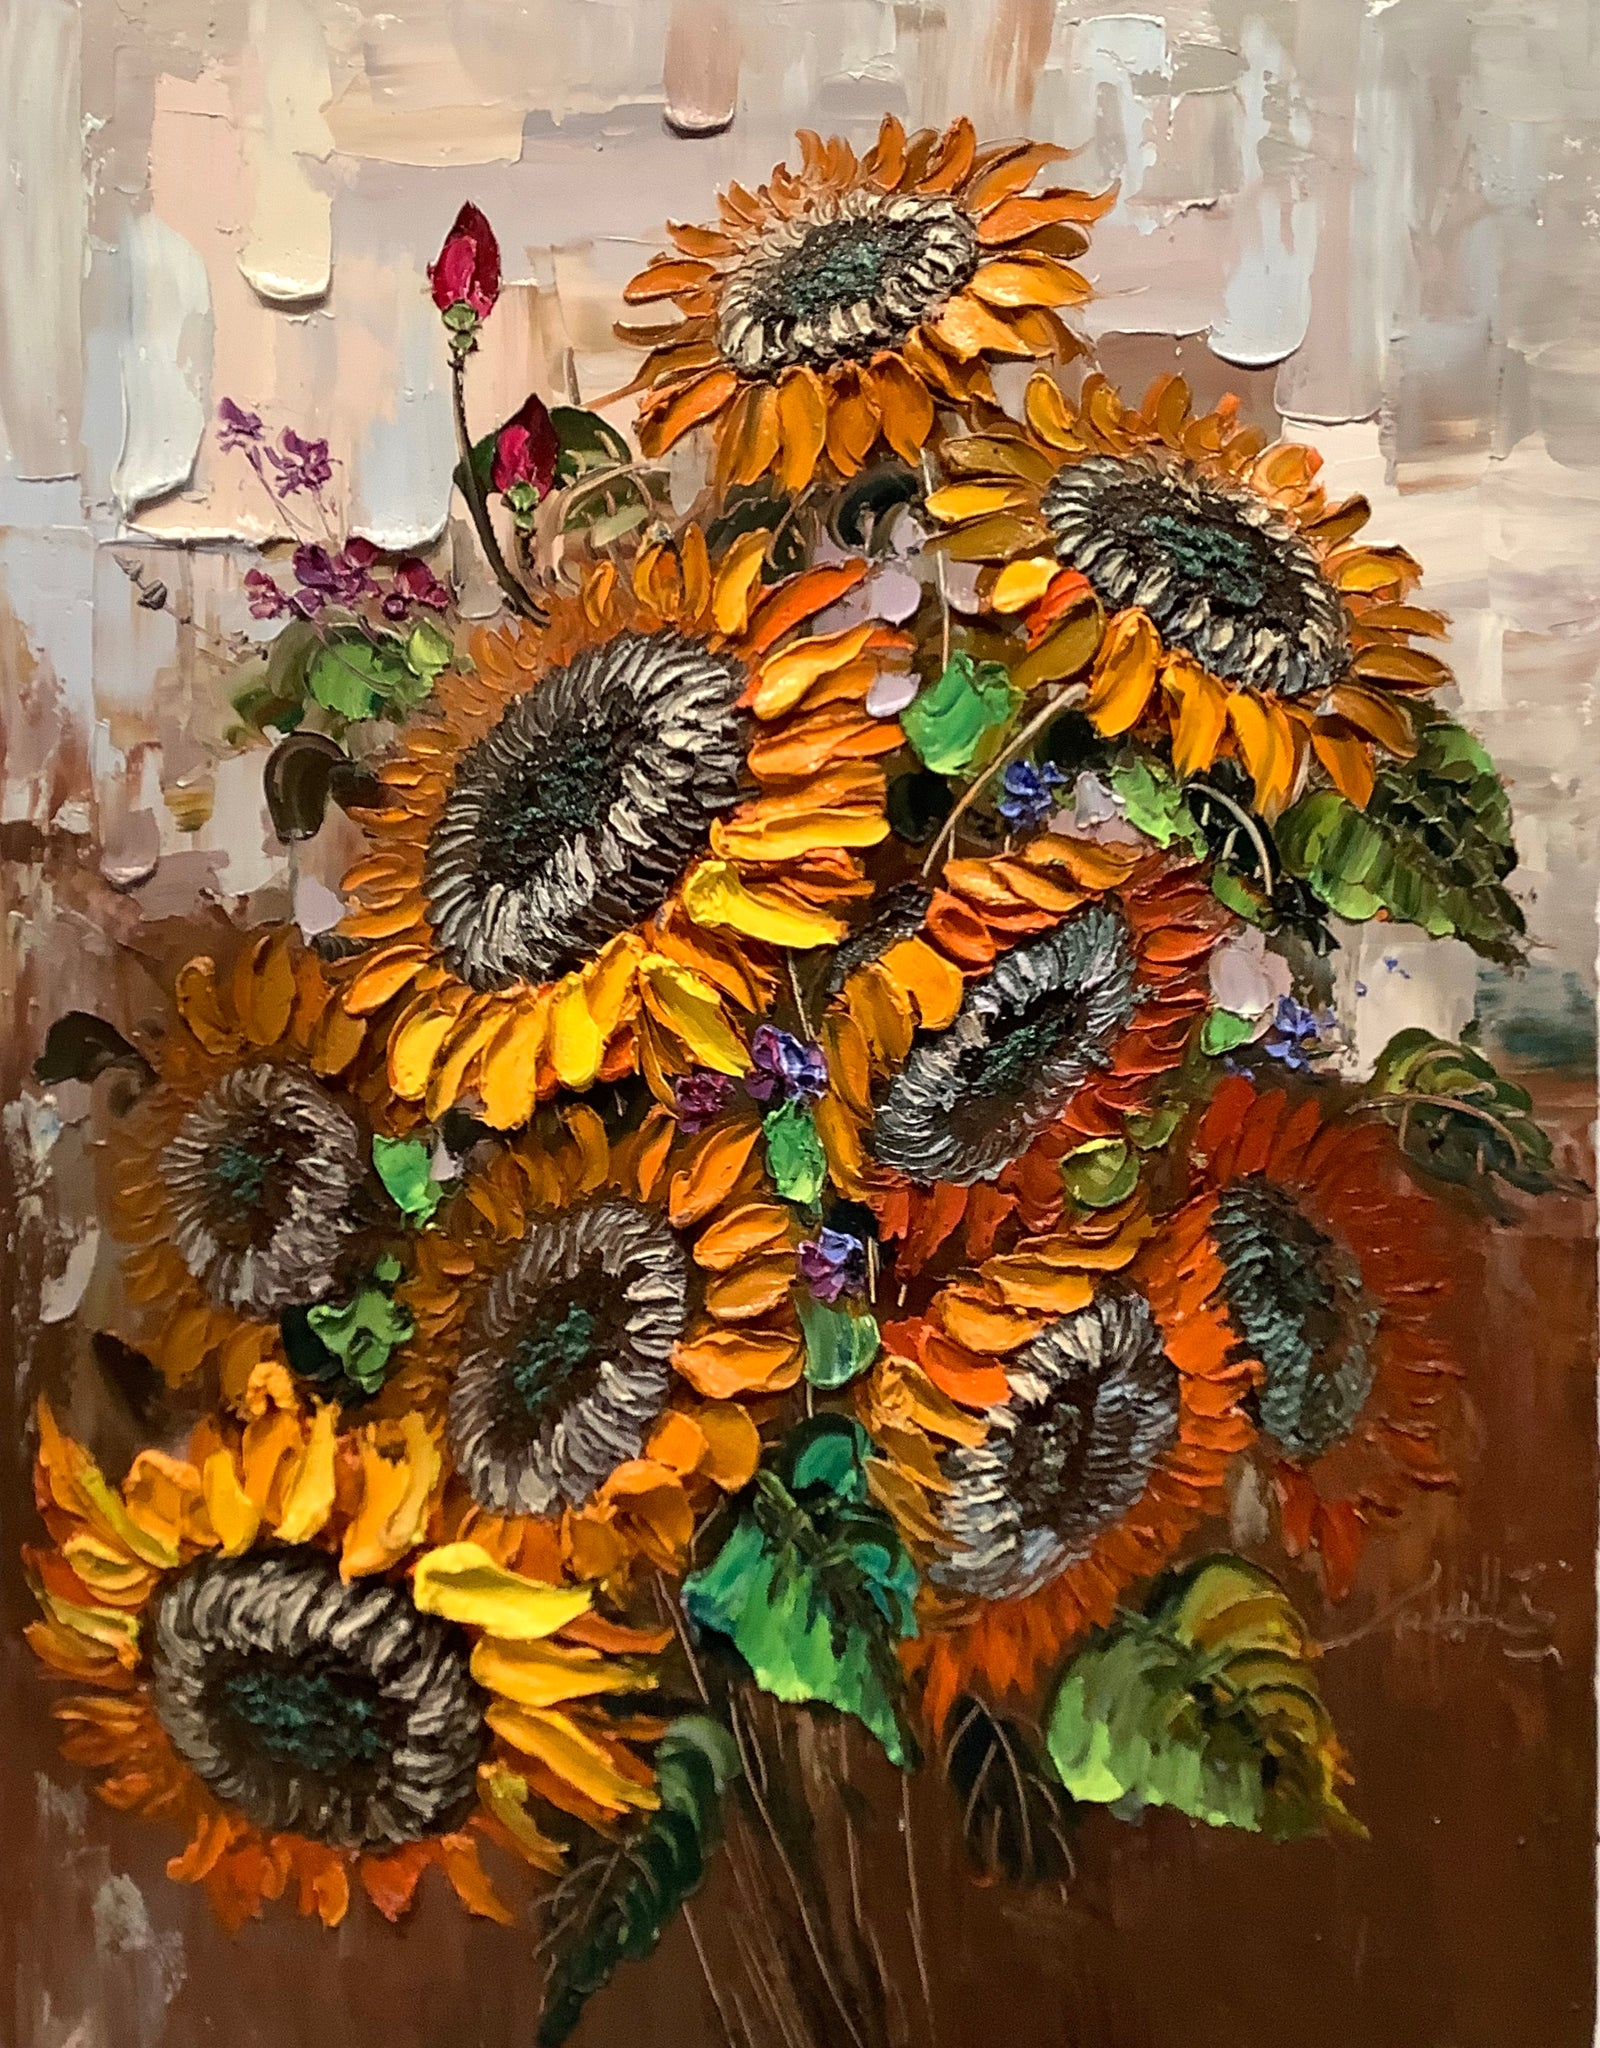 Sun Flower by Zhou ShiQiang